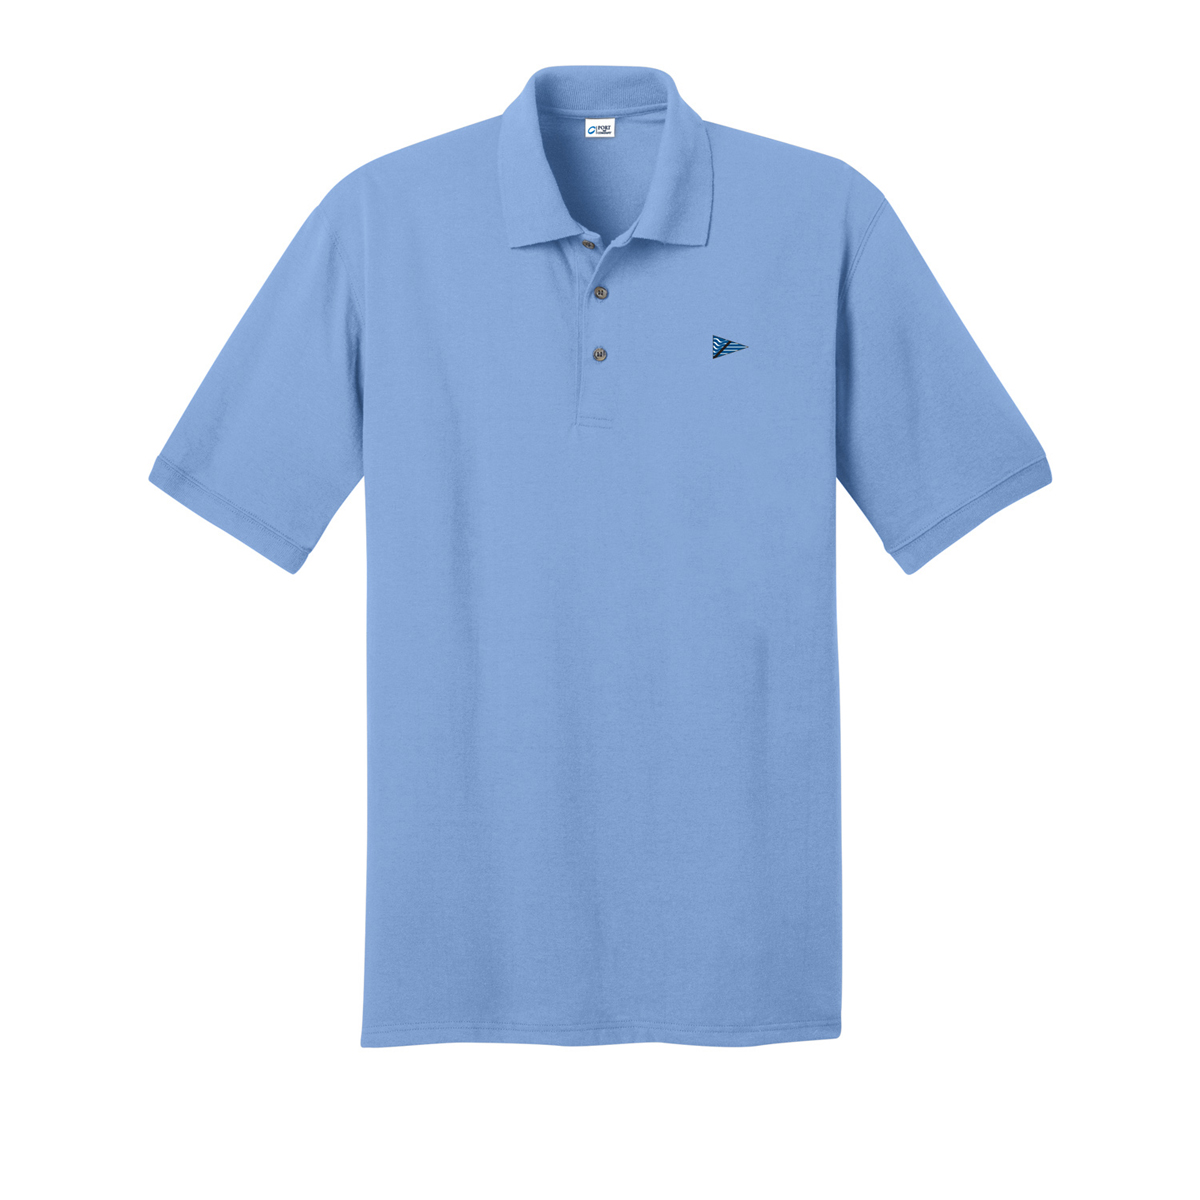 Breakwater Yacht Club-Men's Cotton Polo